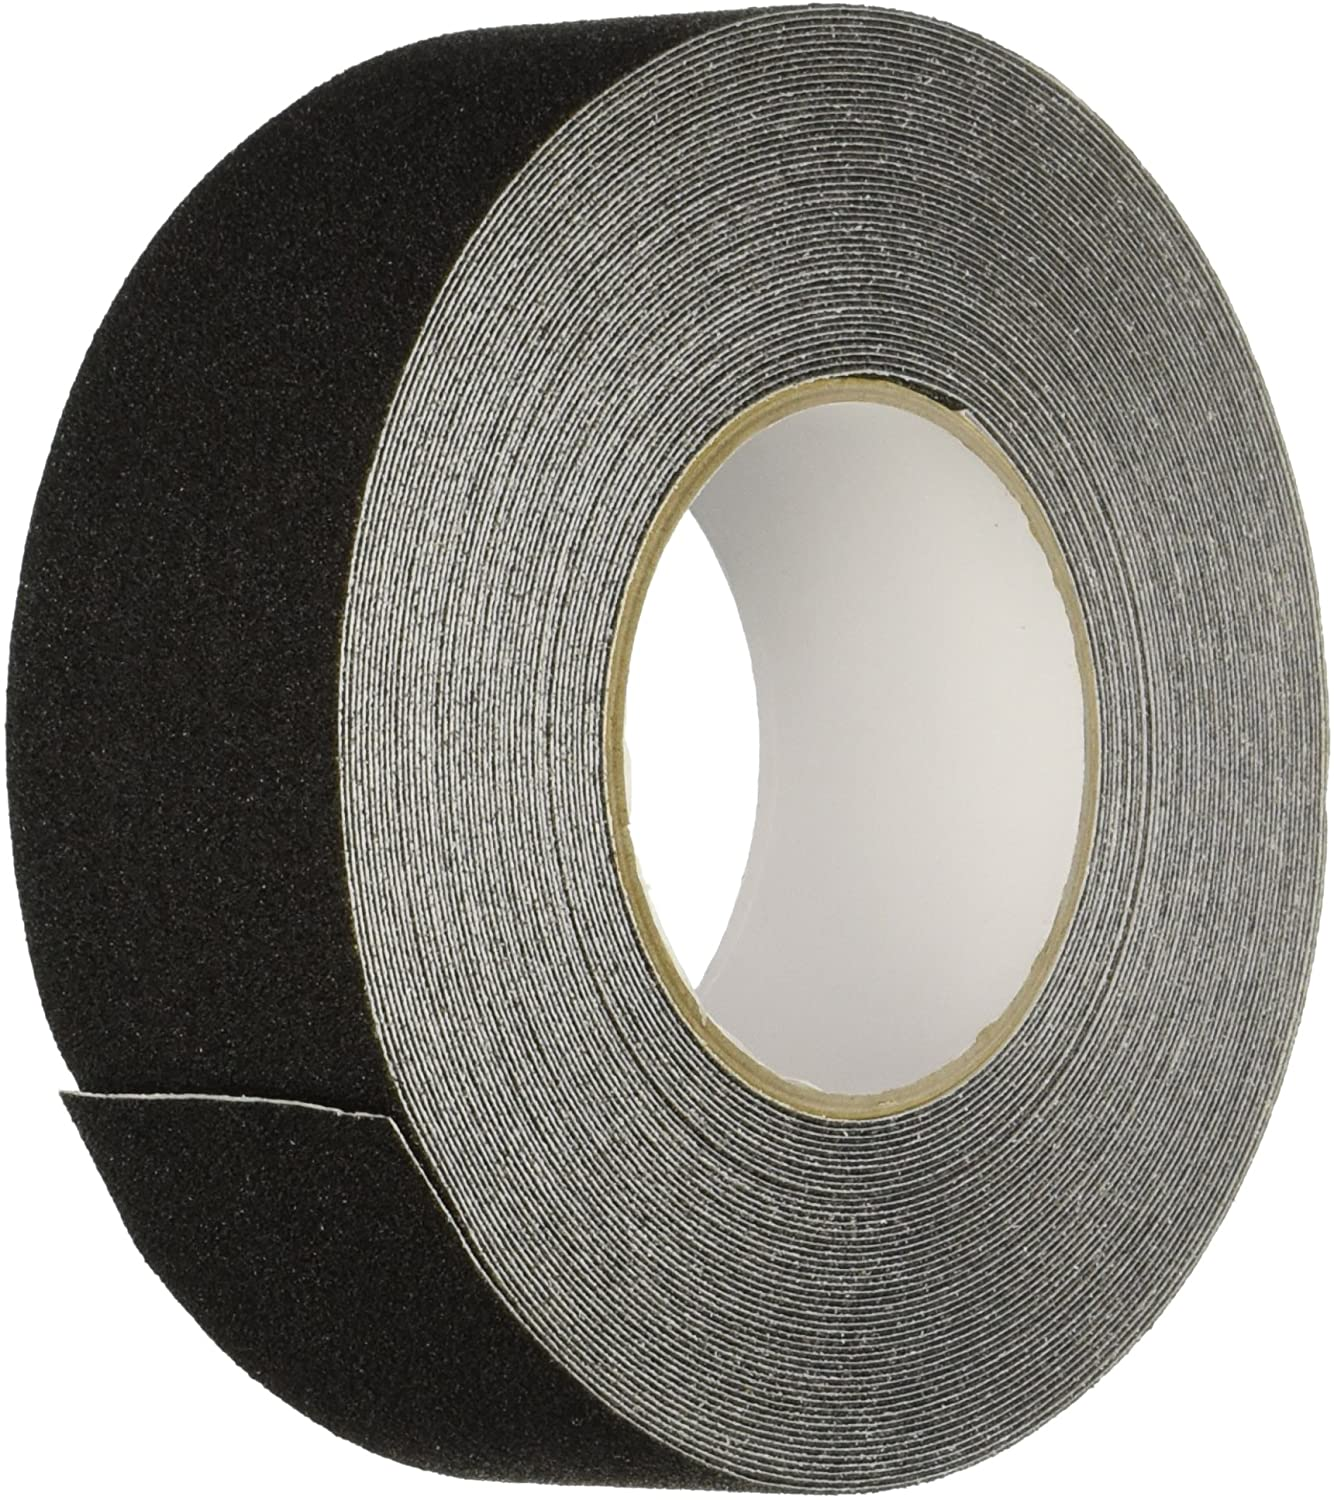 "4"" X 60' Foot Roll Heskins Safety Grip Anti Slip Tape Black NSTS4N"